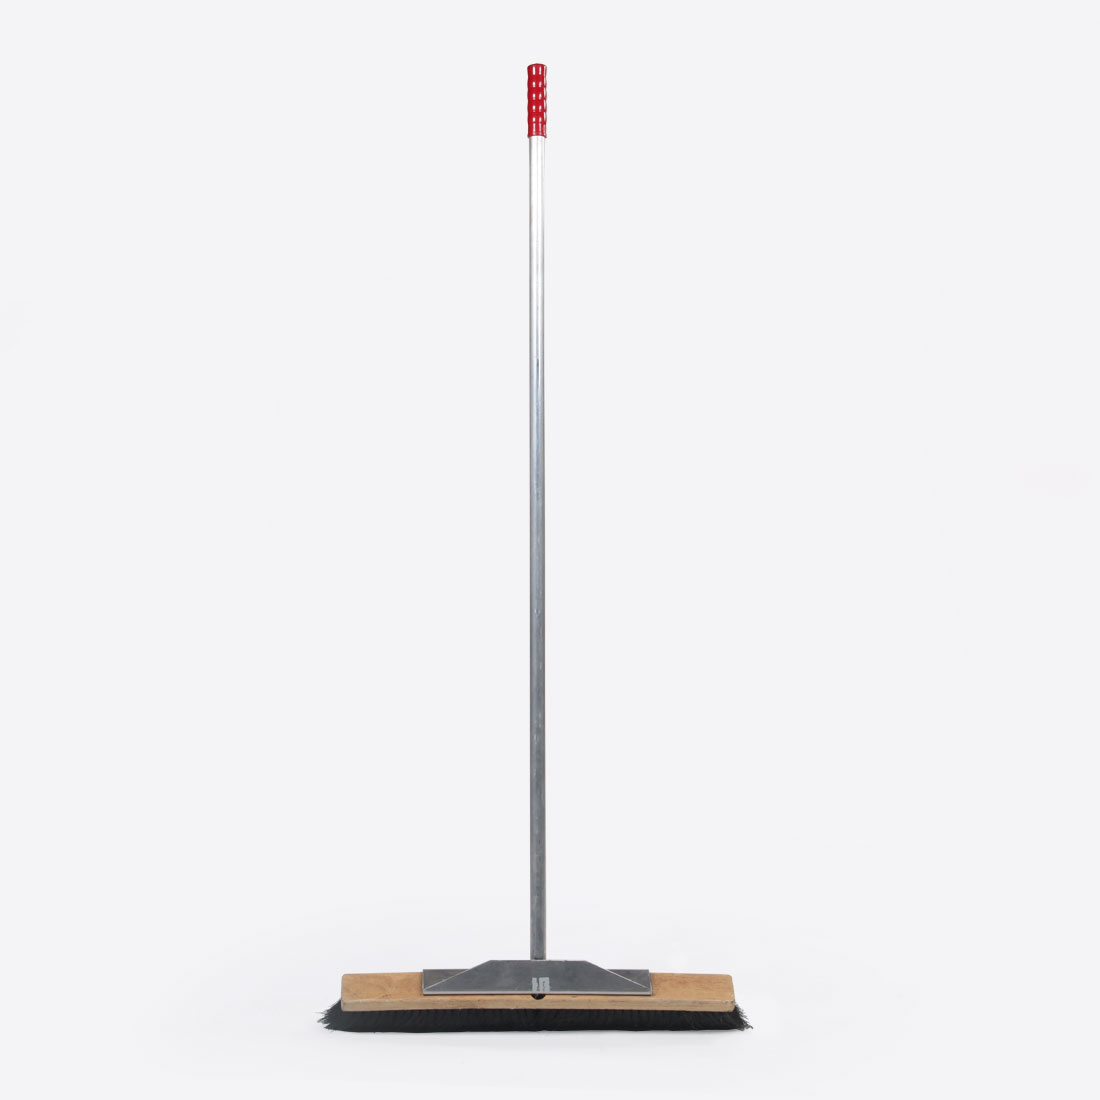 Image of Broom